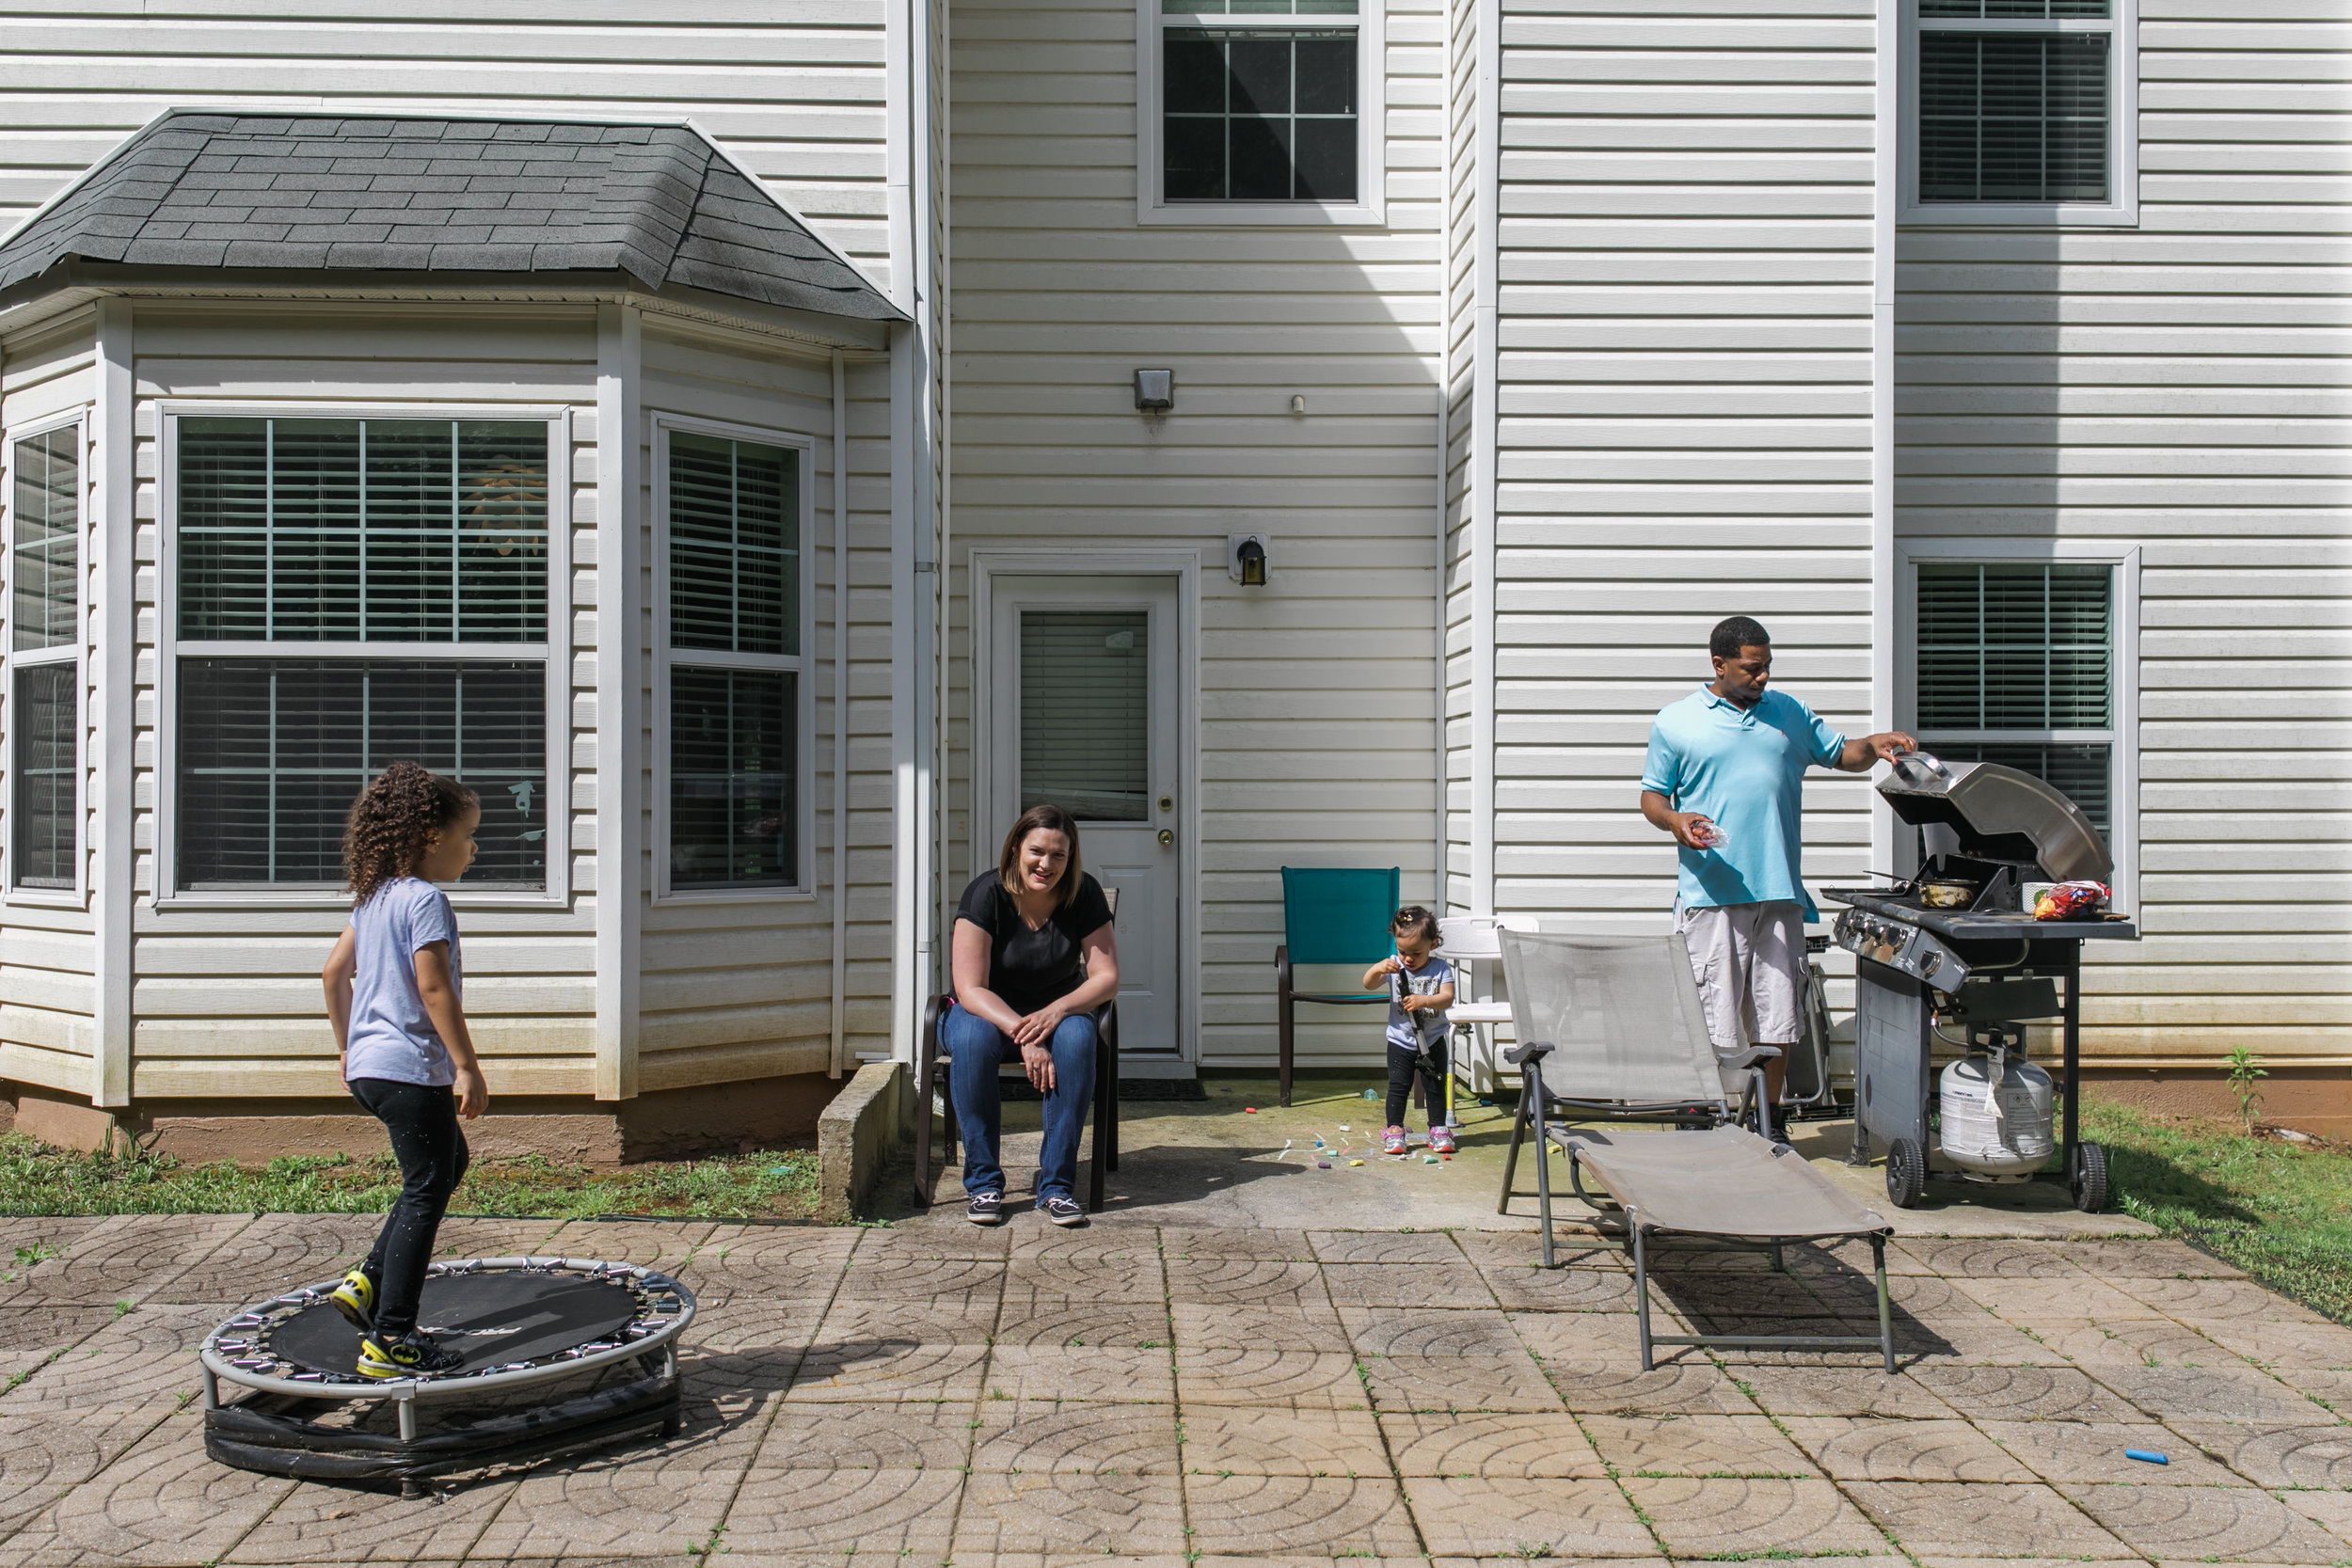 a father holds open a grill and a mother sits on a chair as they watch their daughters play in their backyard